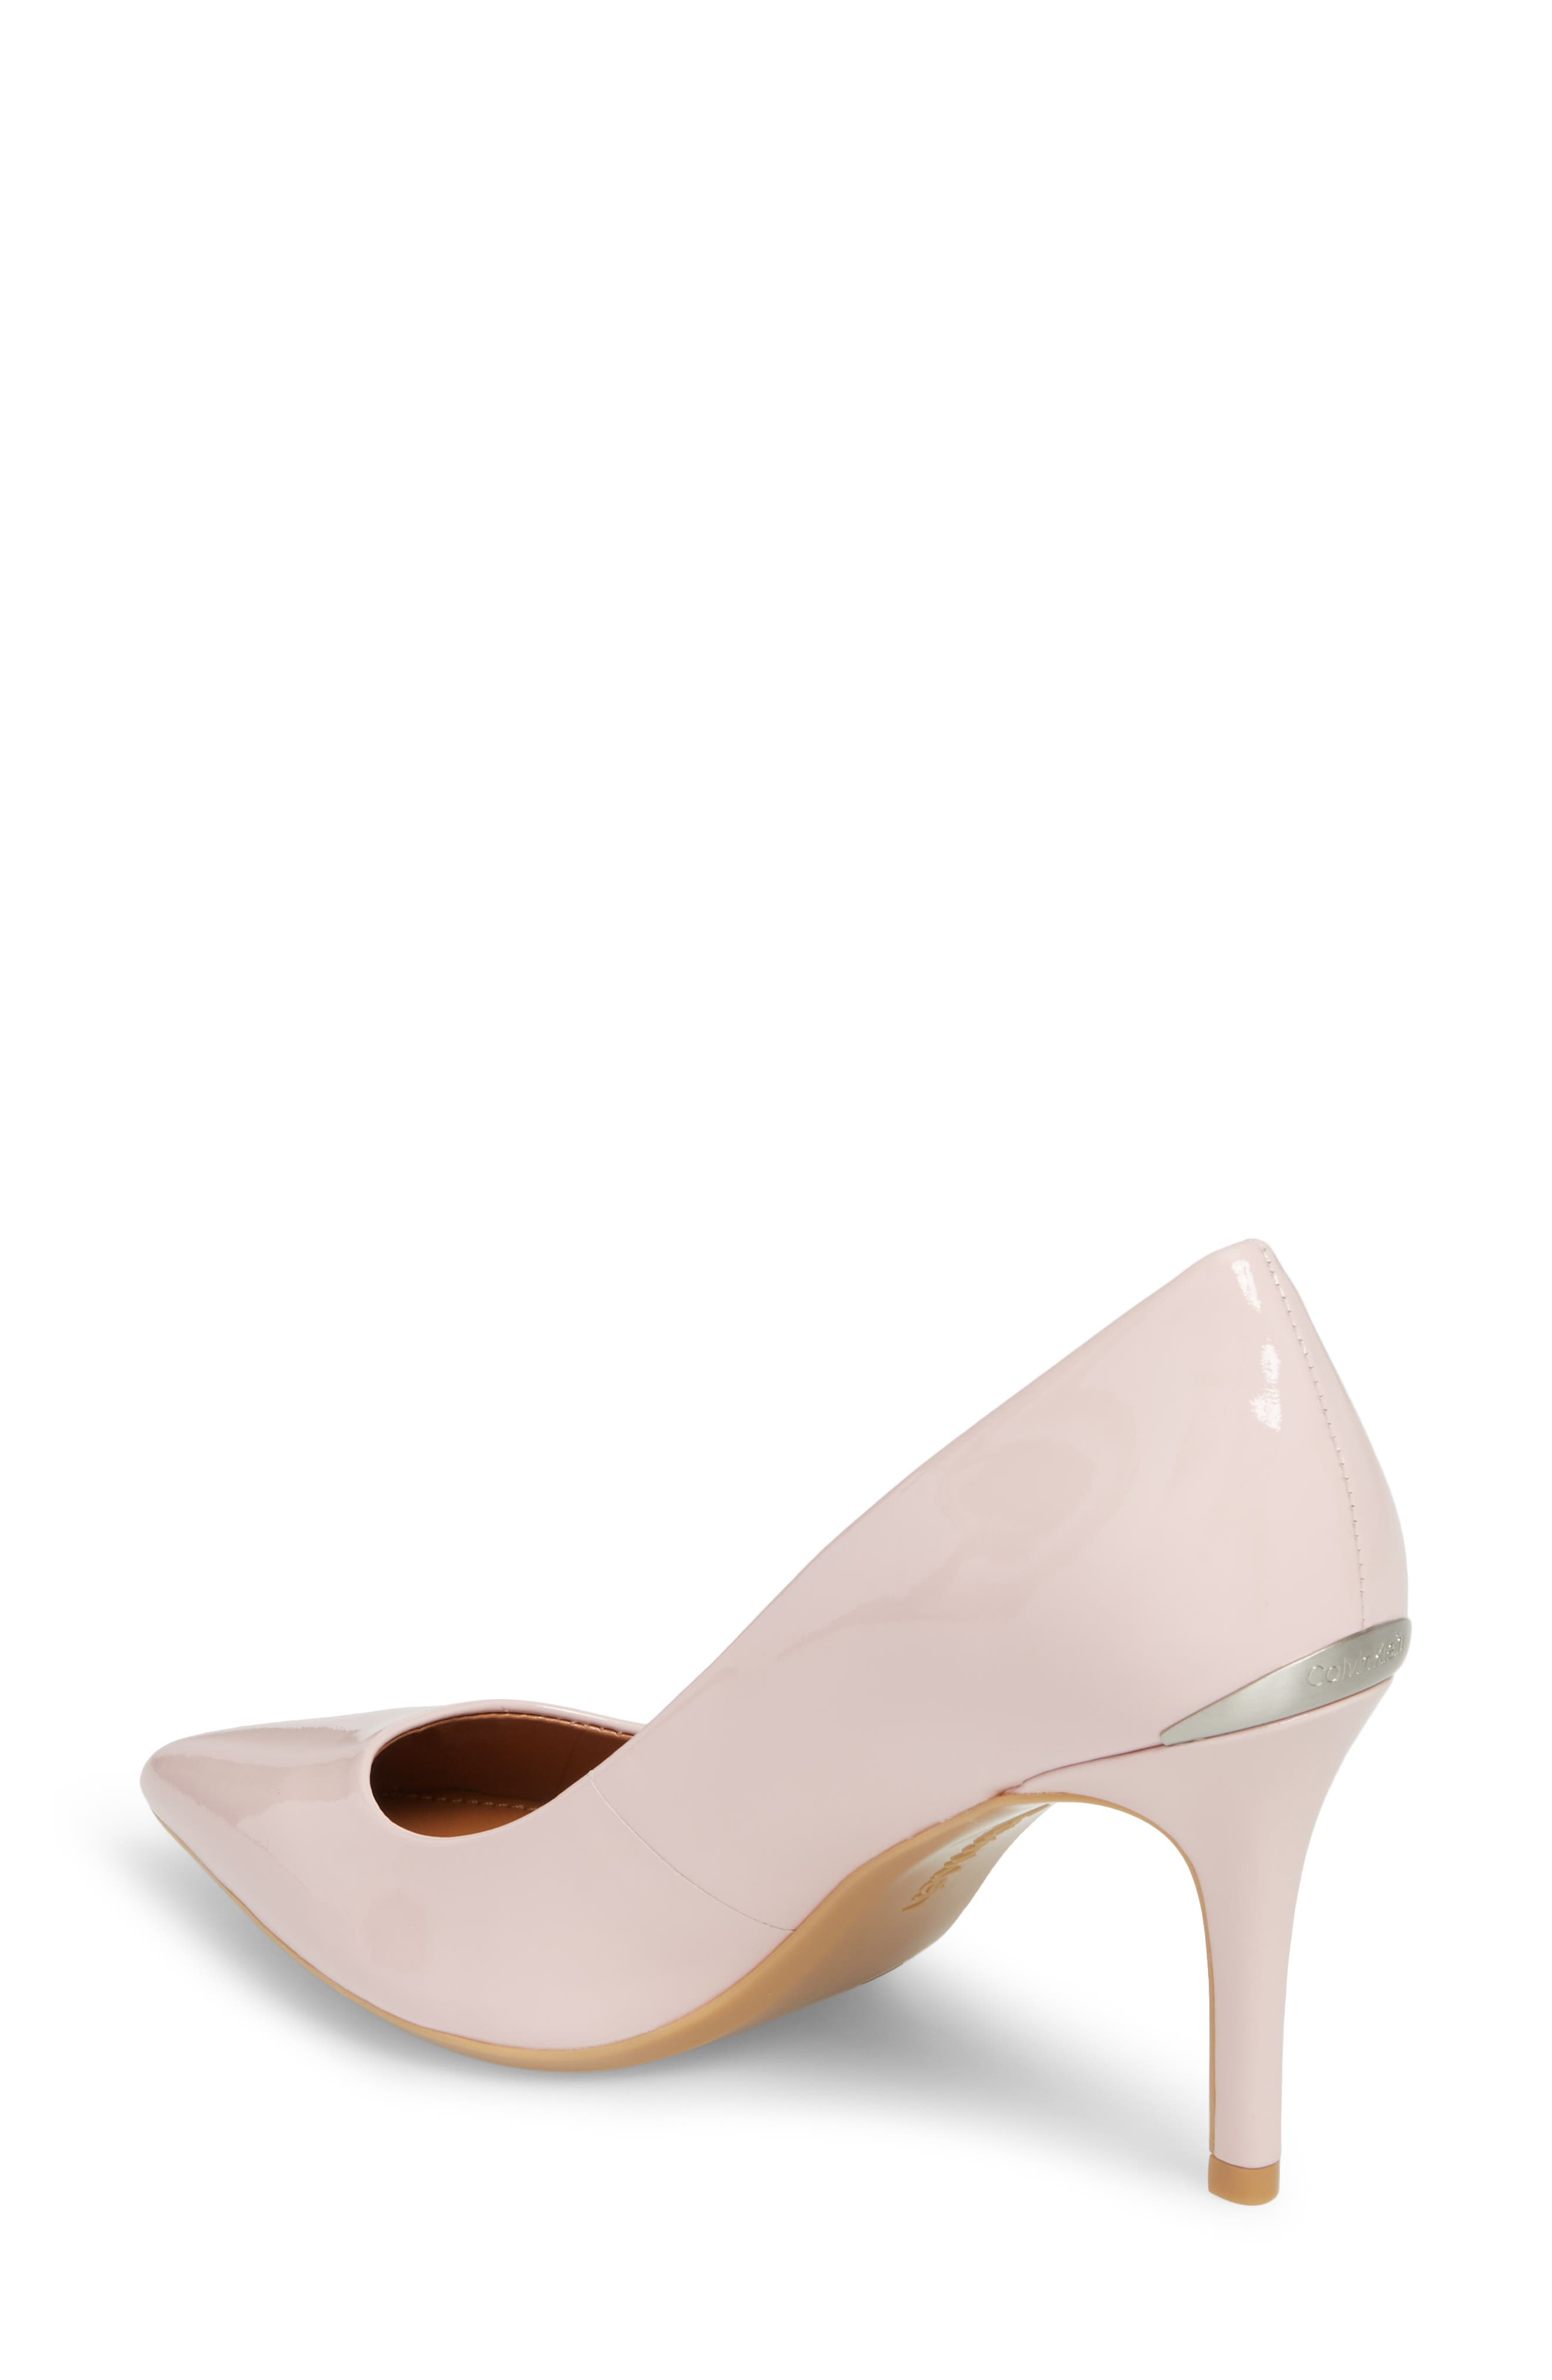 'Gayle' Pointy Toe Pump,                             Alternate thumbnail 2, color,                             Petal Pink Leather